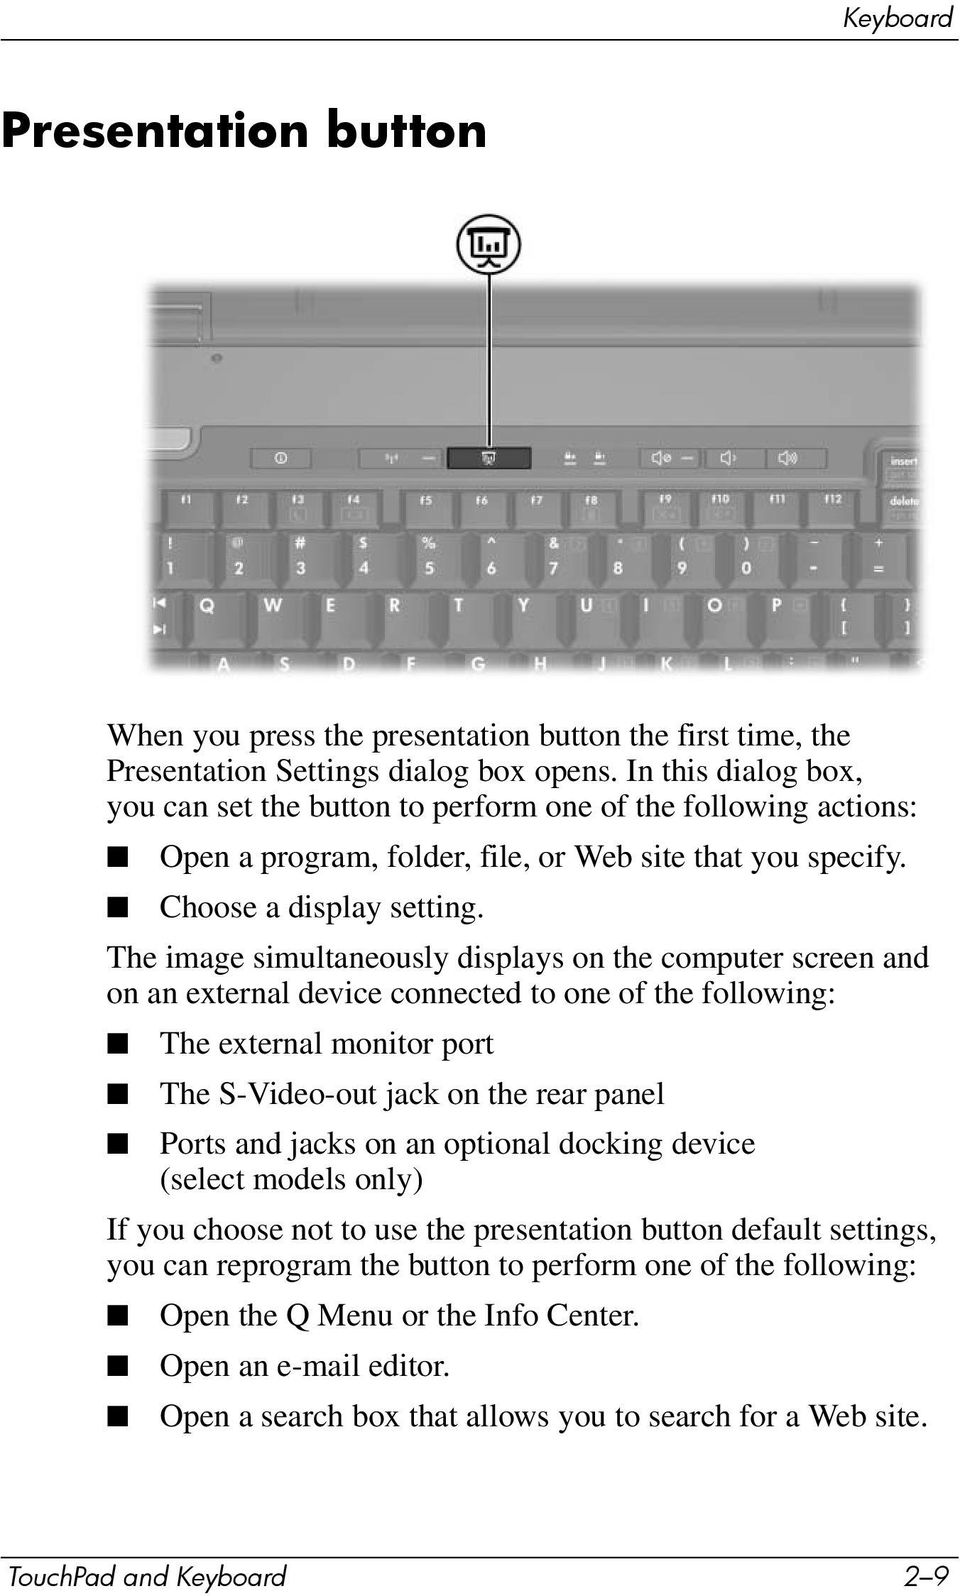 The image simultaneously displays on the computer screen and on an external device connected to one of the following: The external monitor port The S-Video-out jack on the rear panel Ports and jacks